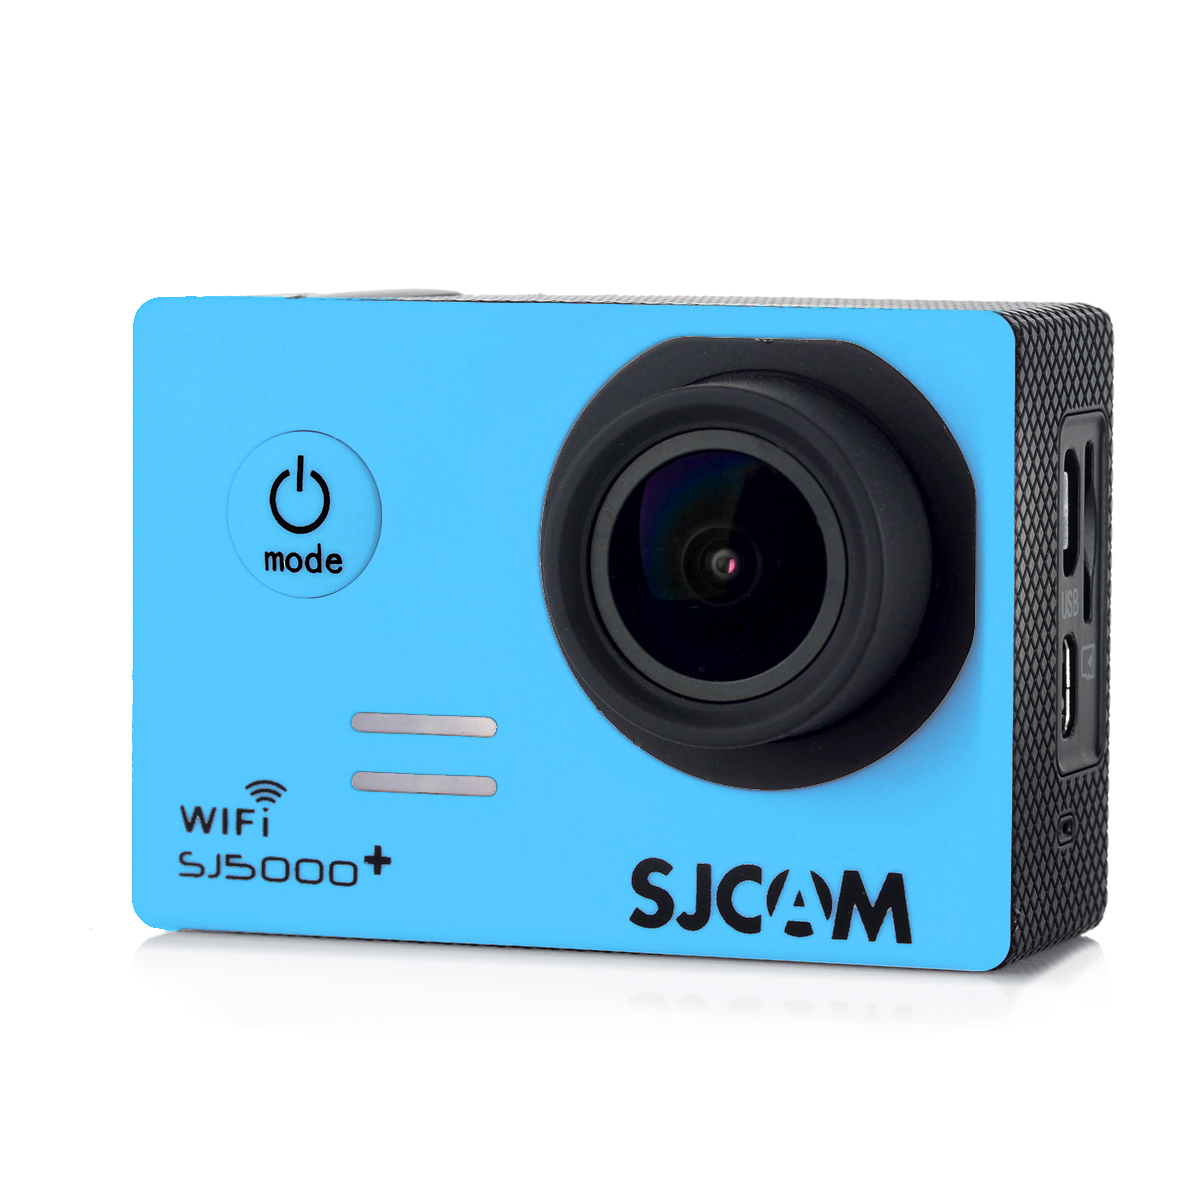 Original SJCAM SJ5000 Plus 16MP WiFi Action HD Camera Ambarella A7LS75 Waterproof Blue